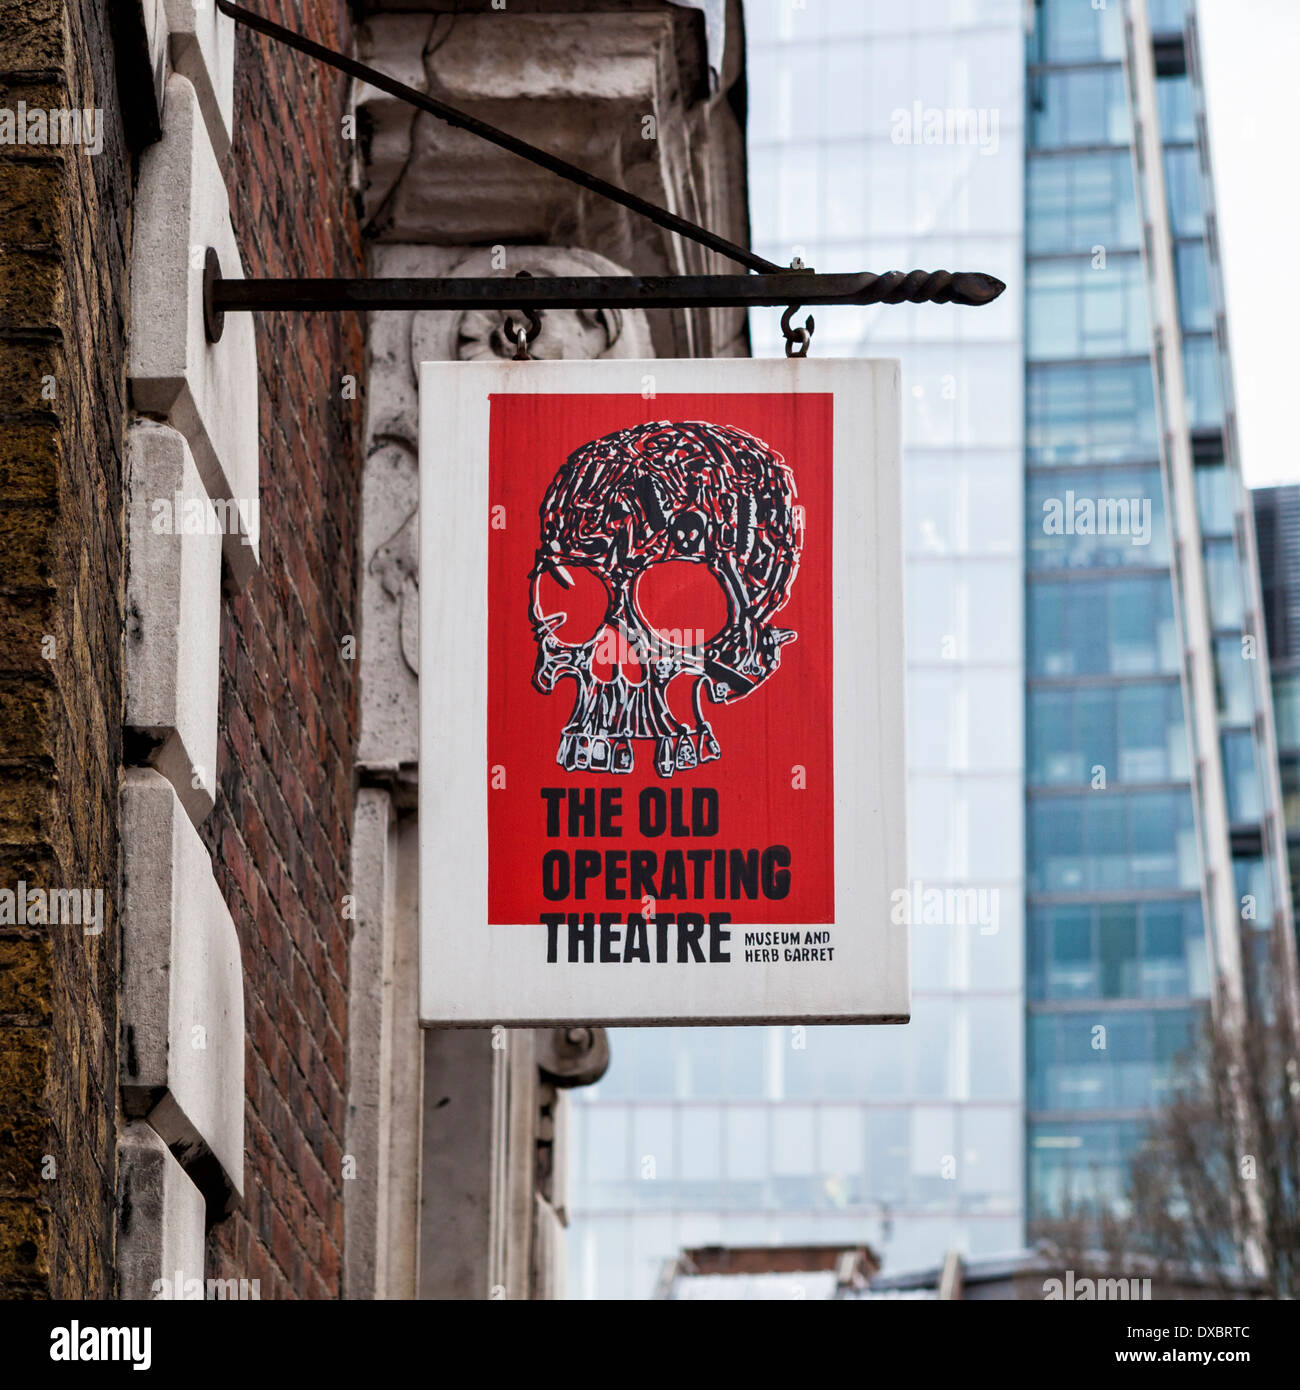 Old Operating Theatre museum and Herb Garret. Red sign with skull and crossbones at entrance - St Thomas Street, London, Uk - Stock Image